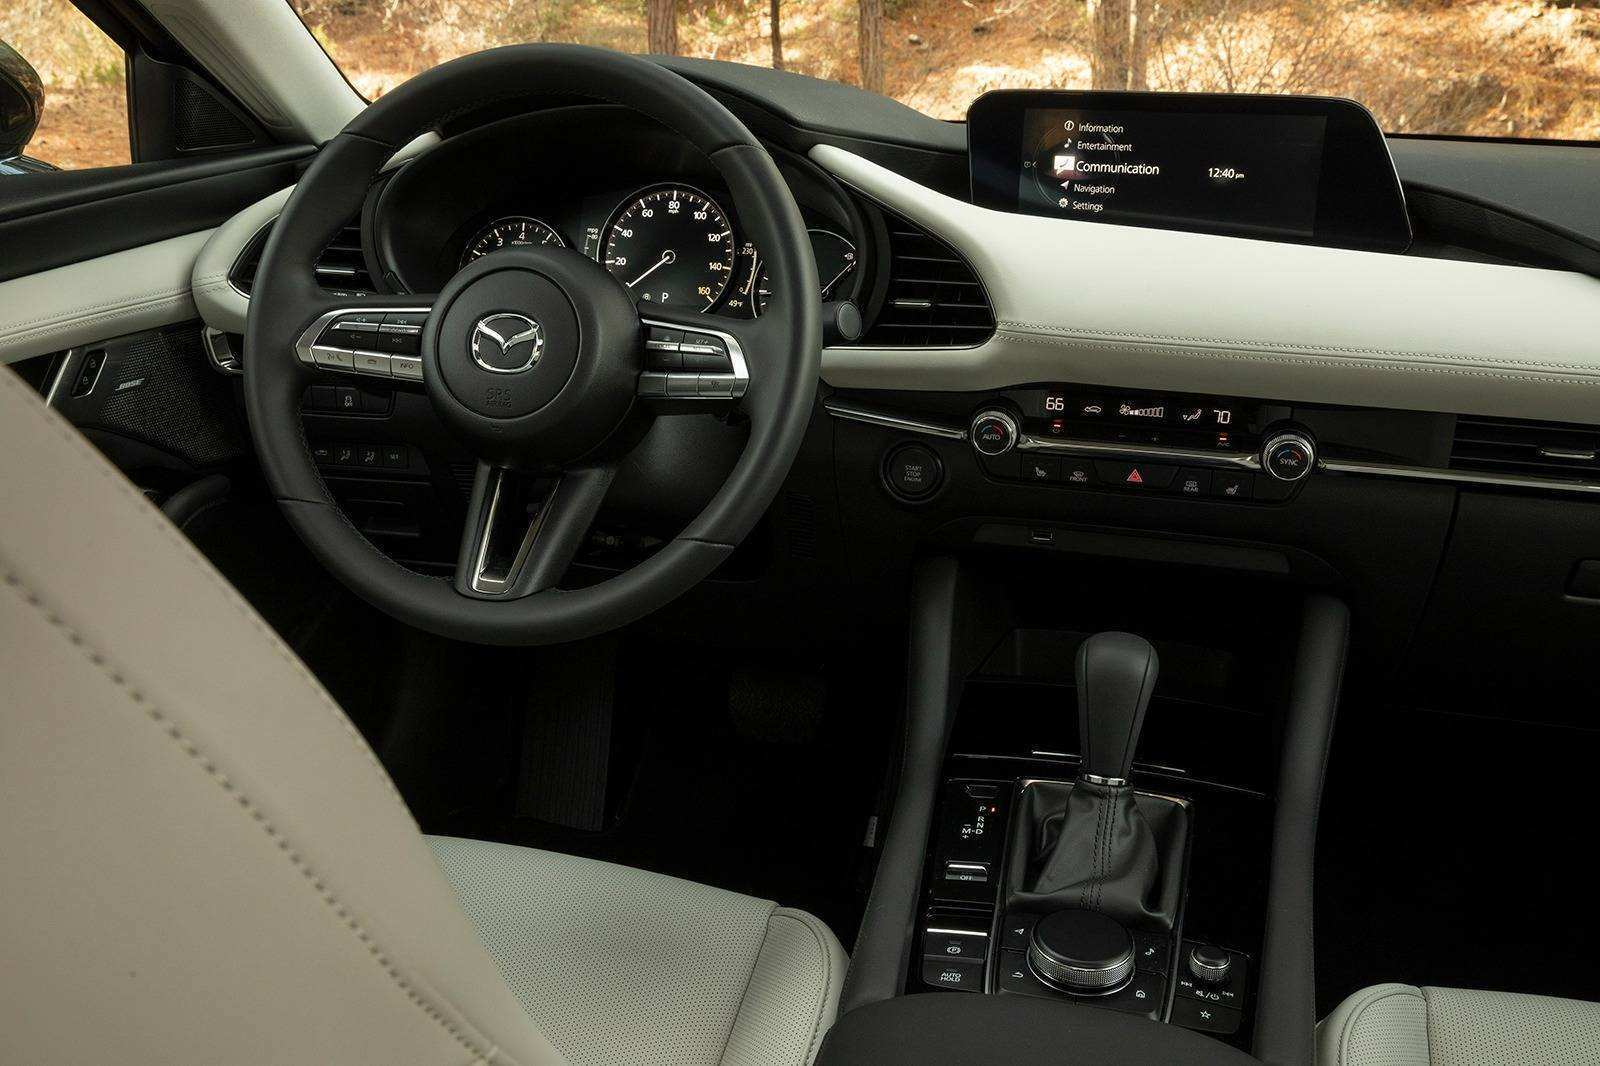 86 New Mazda 3 2019 Interior Price and Review with Mazda 3 2019 Interior